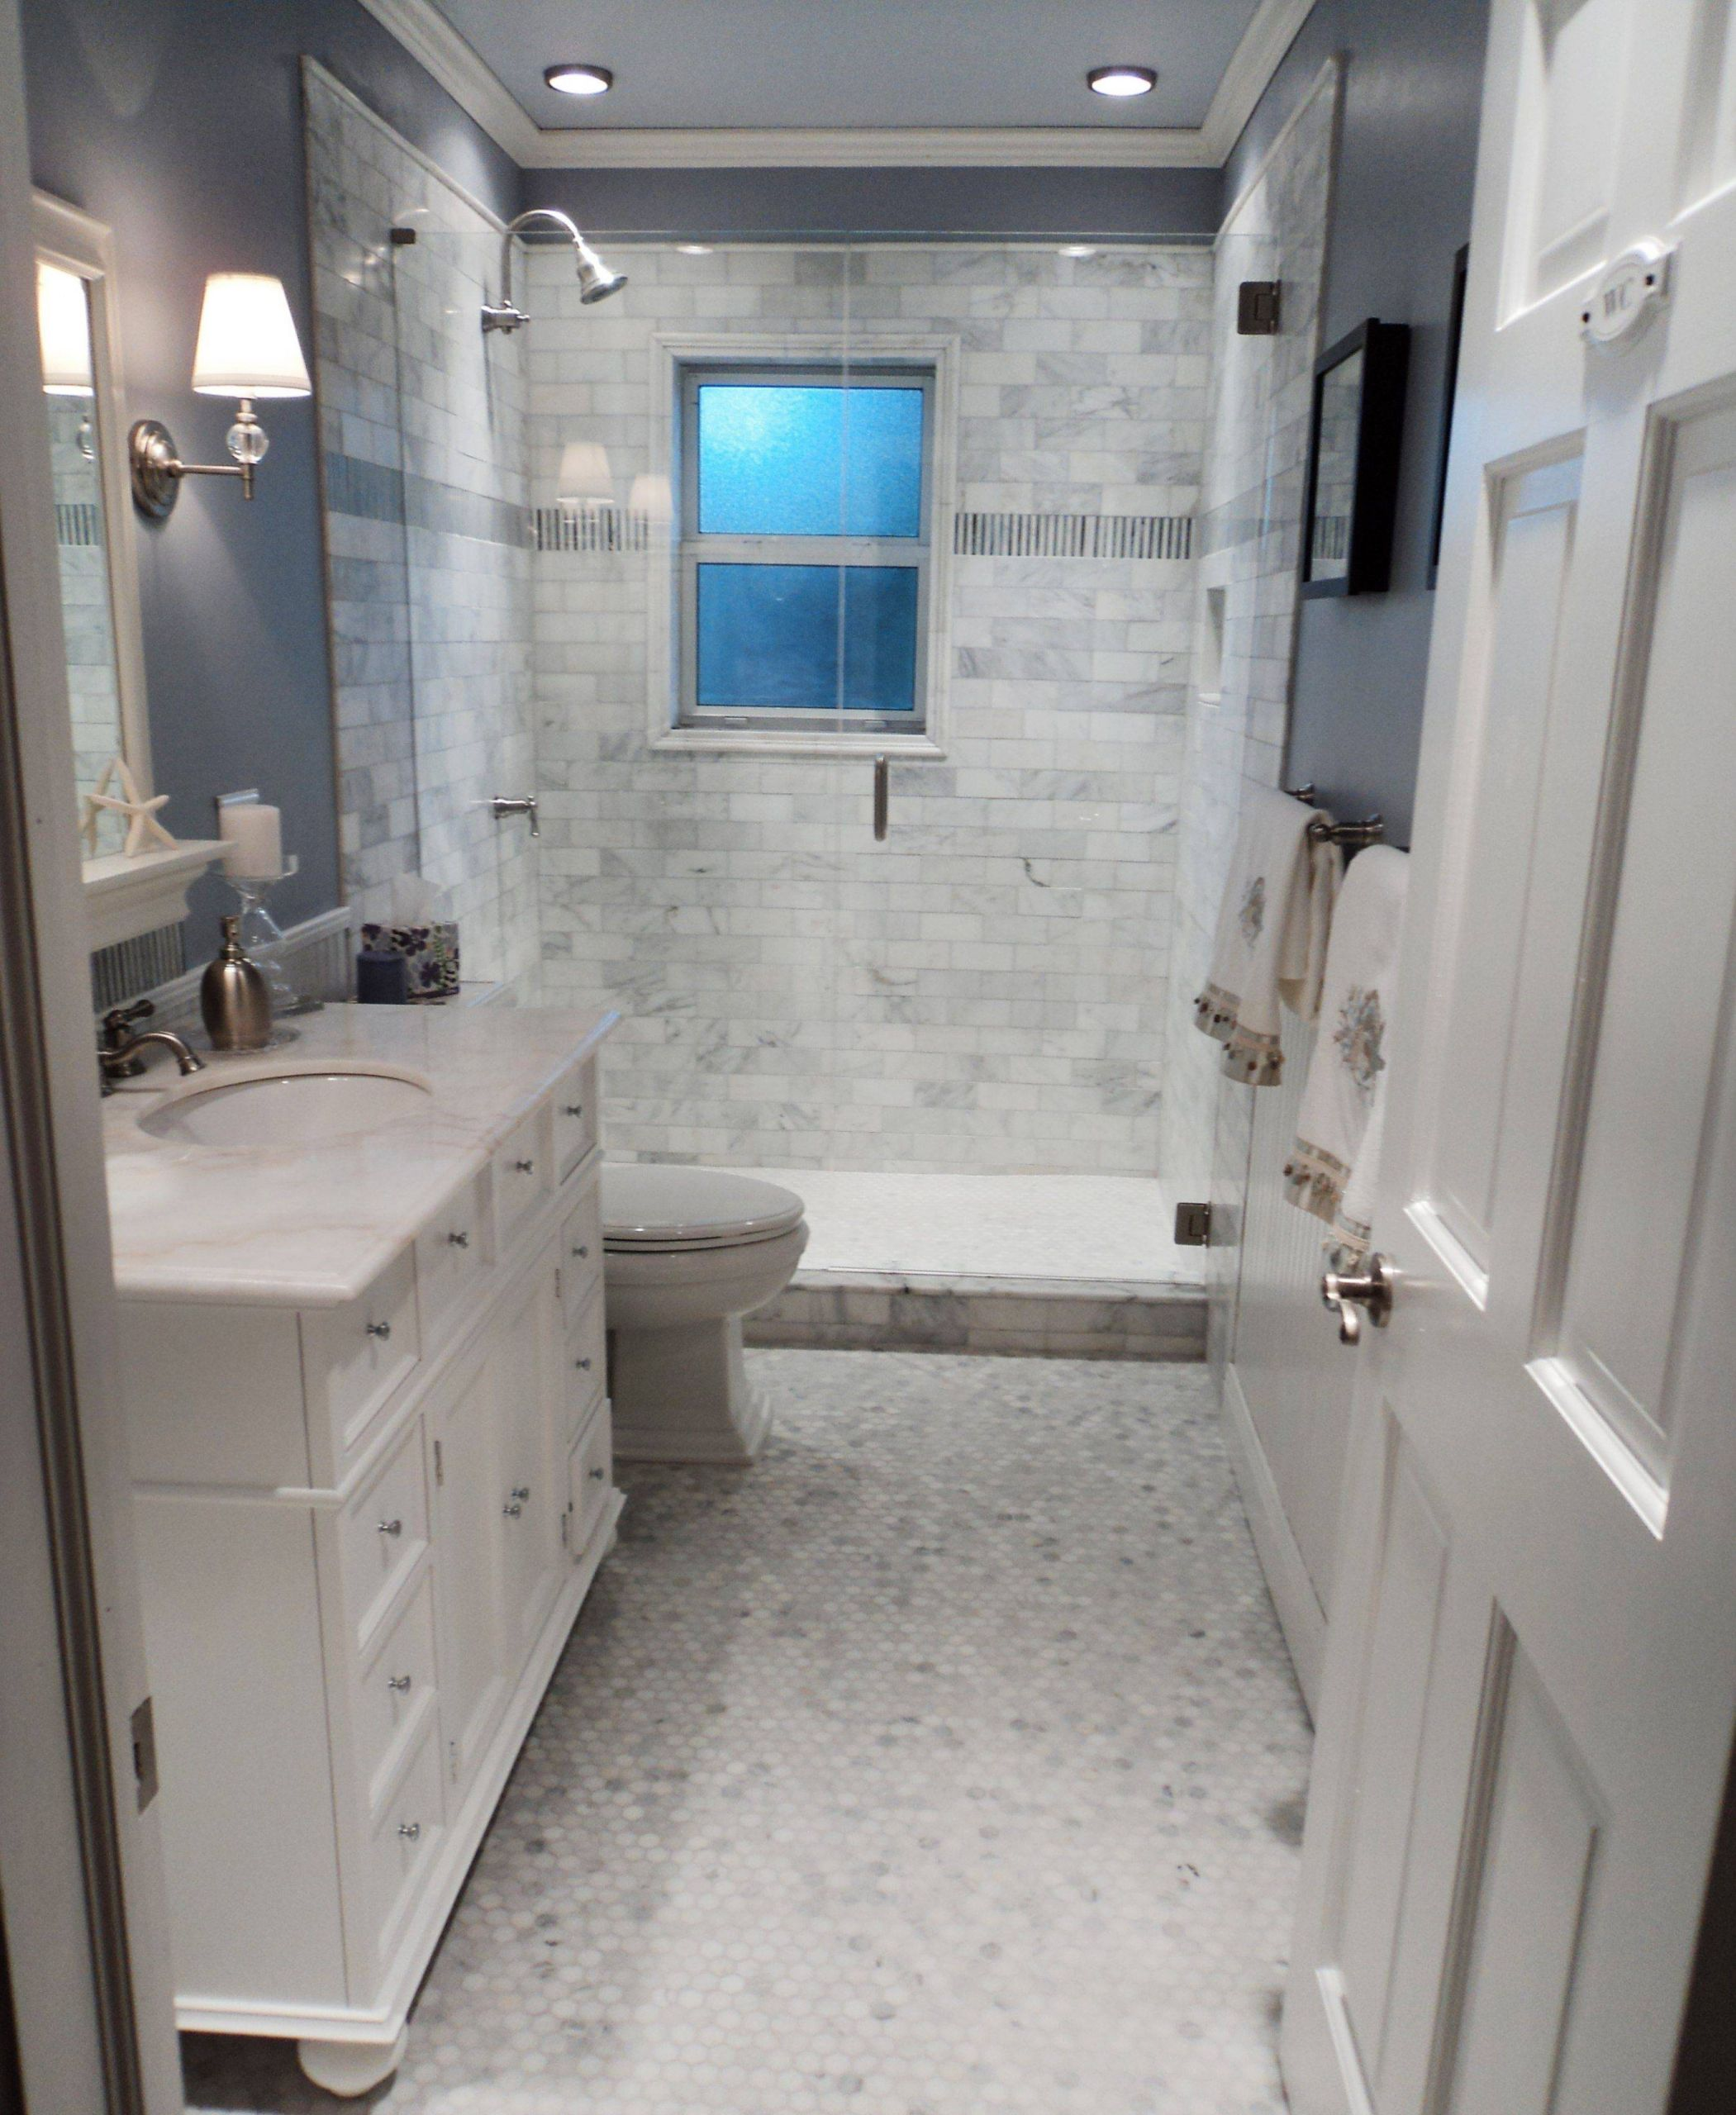 Bathroom Remodel Ideas Best Of Image Result for 5x10 Bathroom Pictures